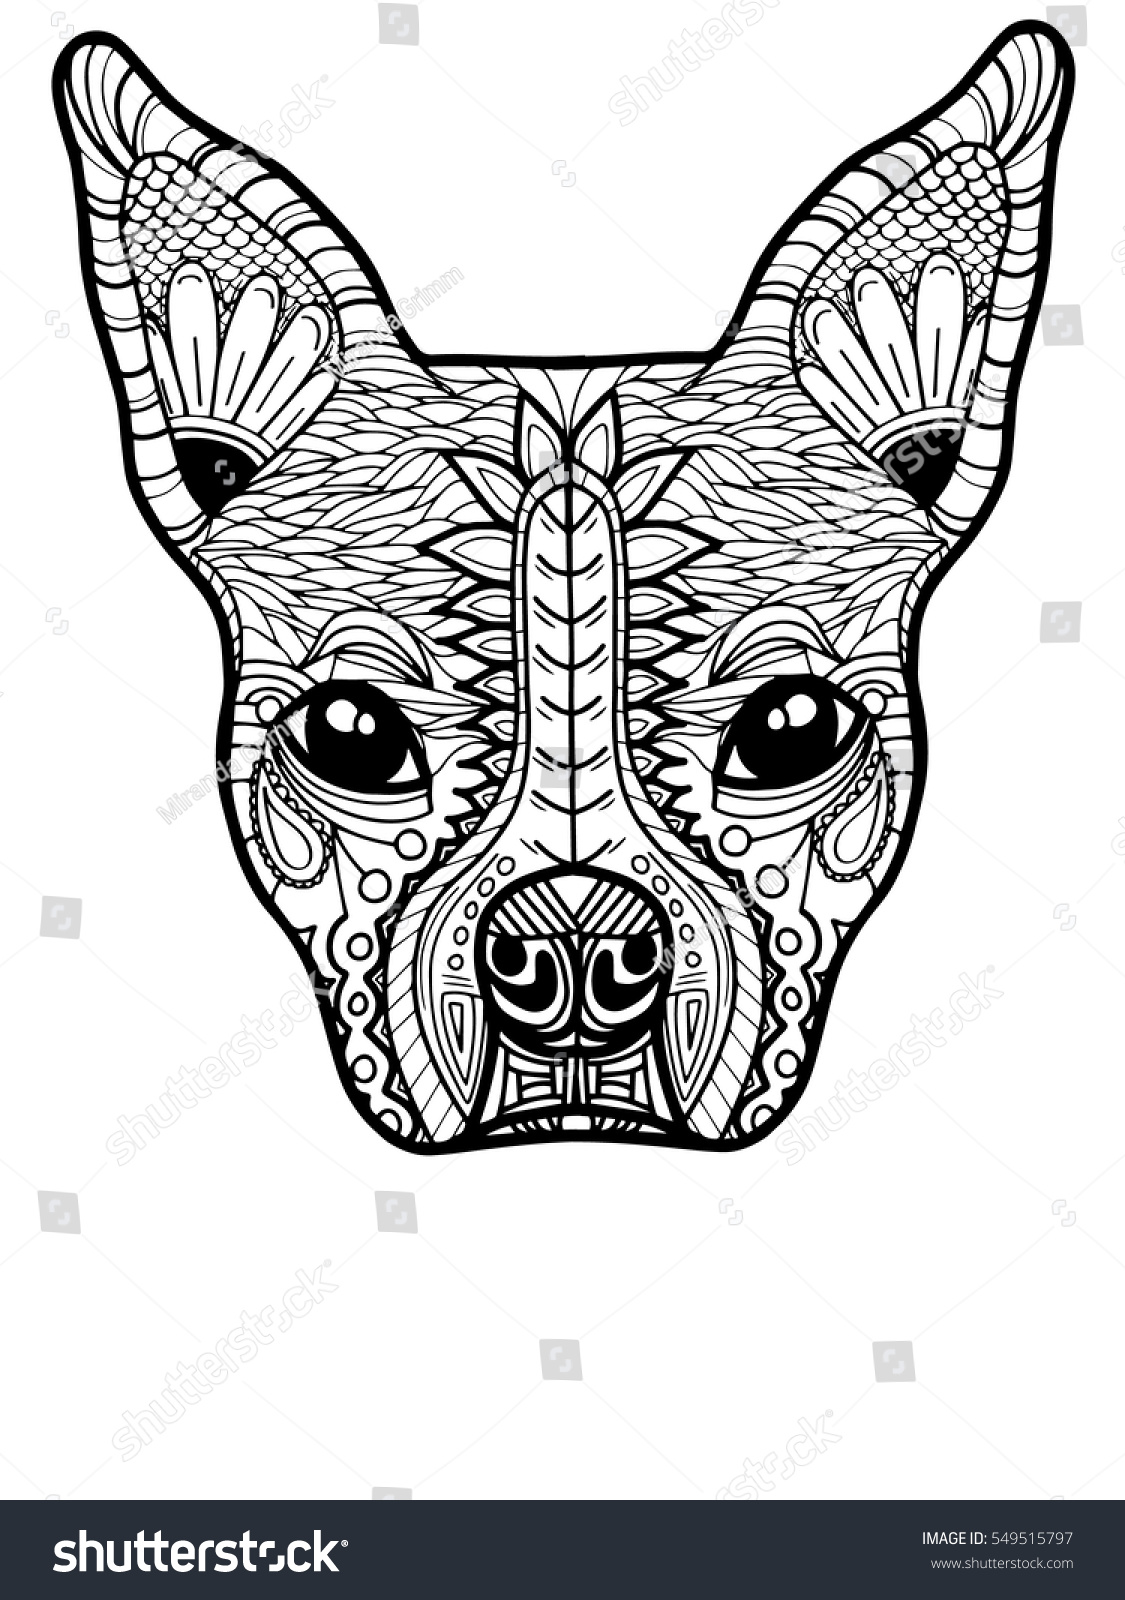 boston terrier or french bulldog adult coloring page - Boston Terrier Coloring Page